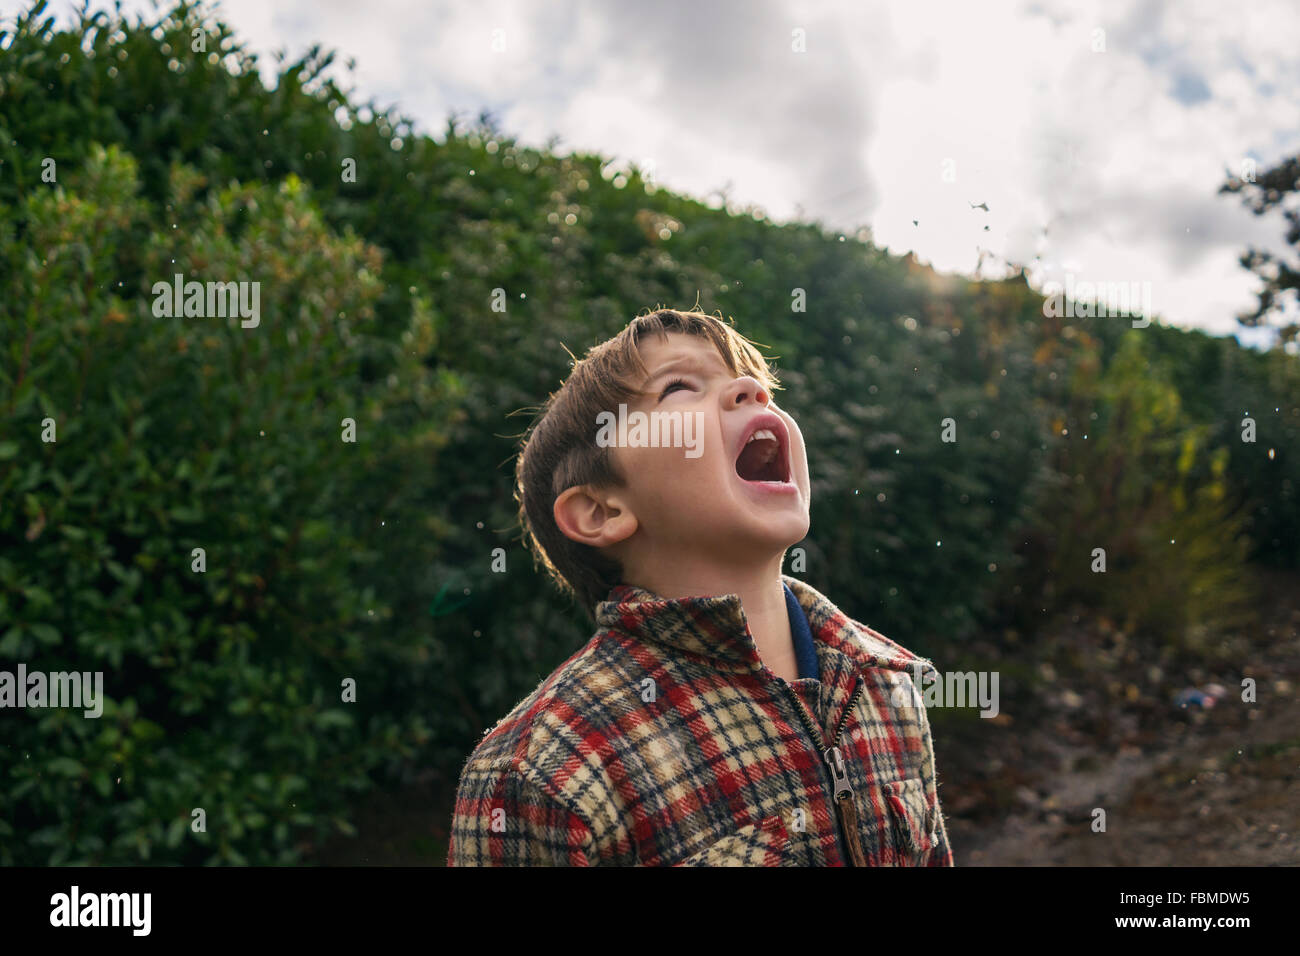 Boy trying to catch raindrops in his mouth - Stock Image